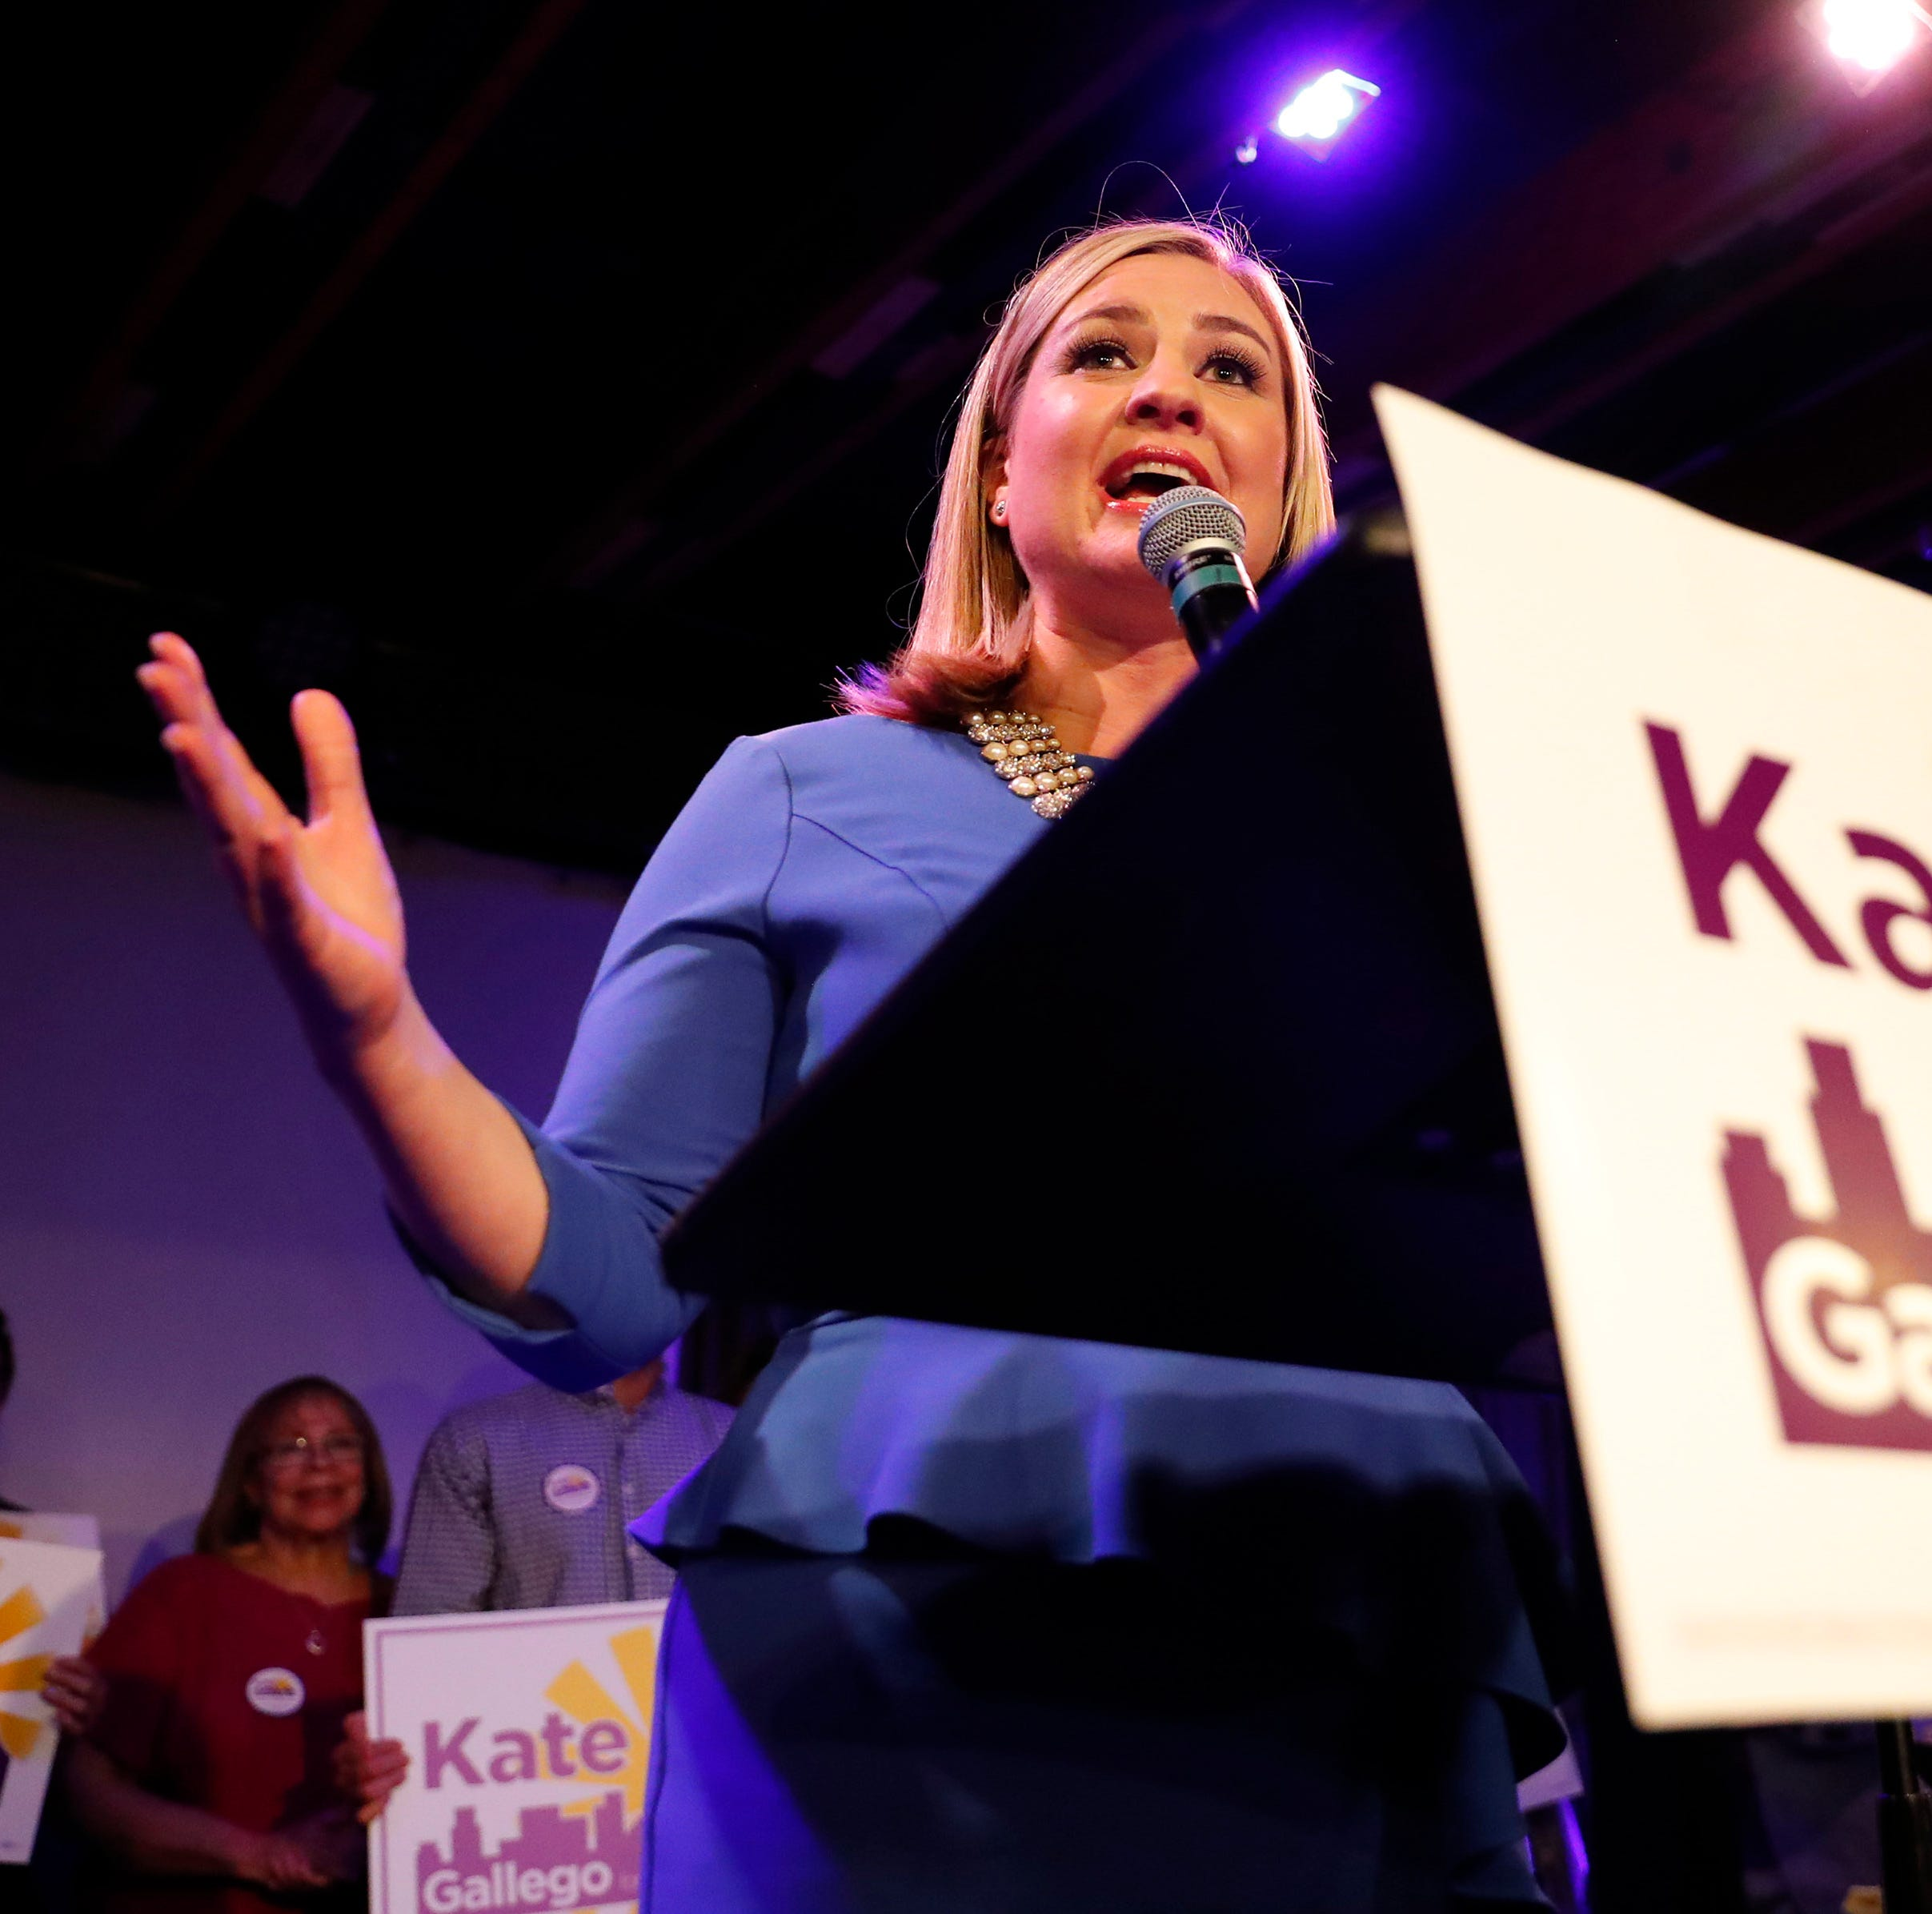 Kate Gallego wins big in race for Phoenix mayor